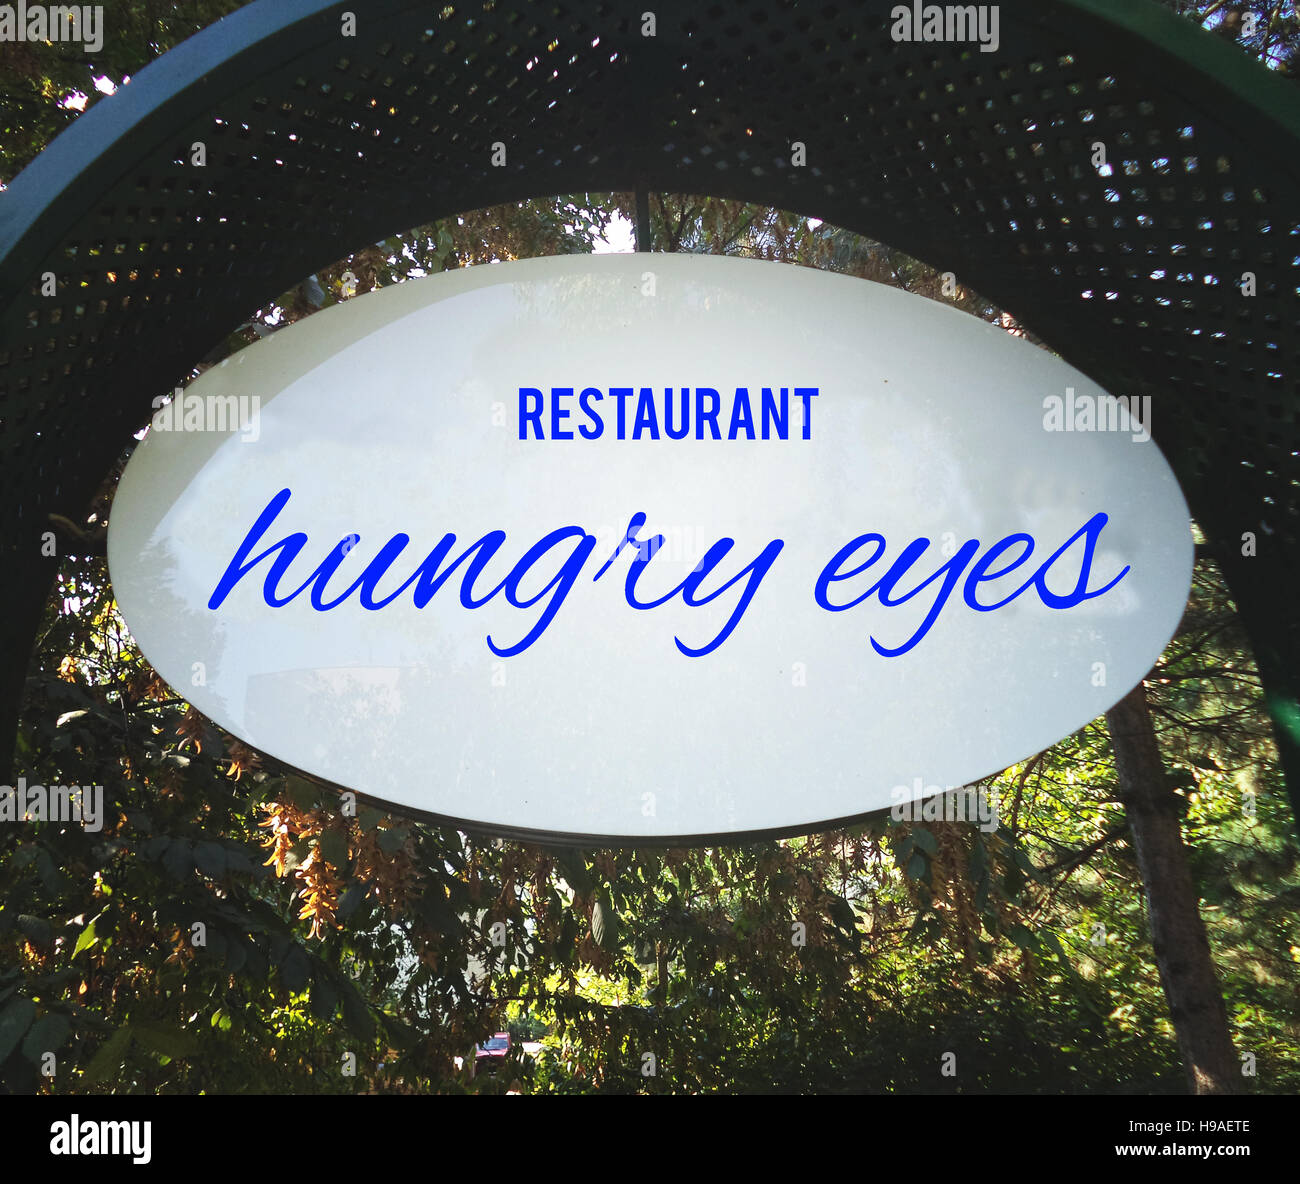 Restaurant, fonds, textures hangry yeux, motivation, poster, citations, image floue Photo Stock